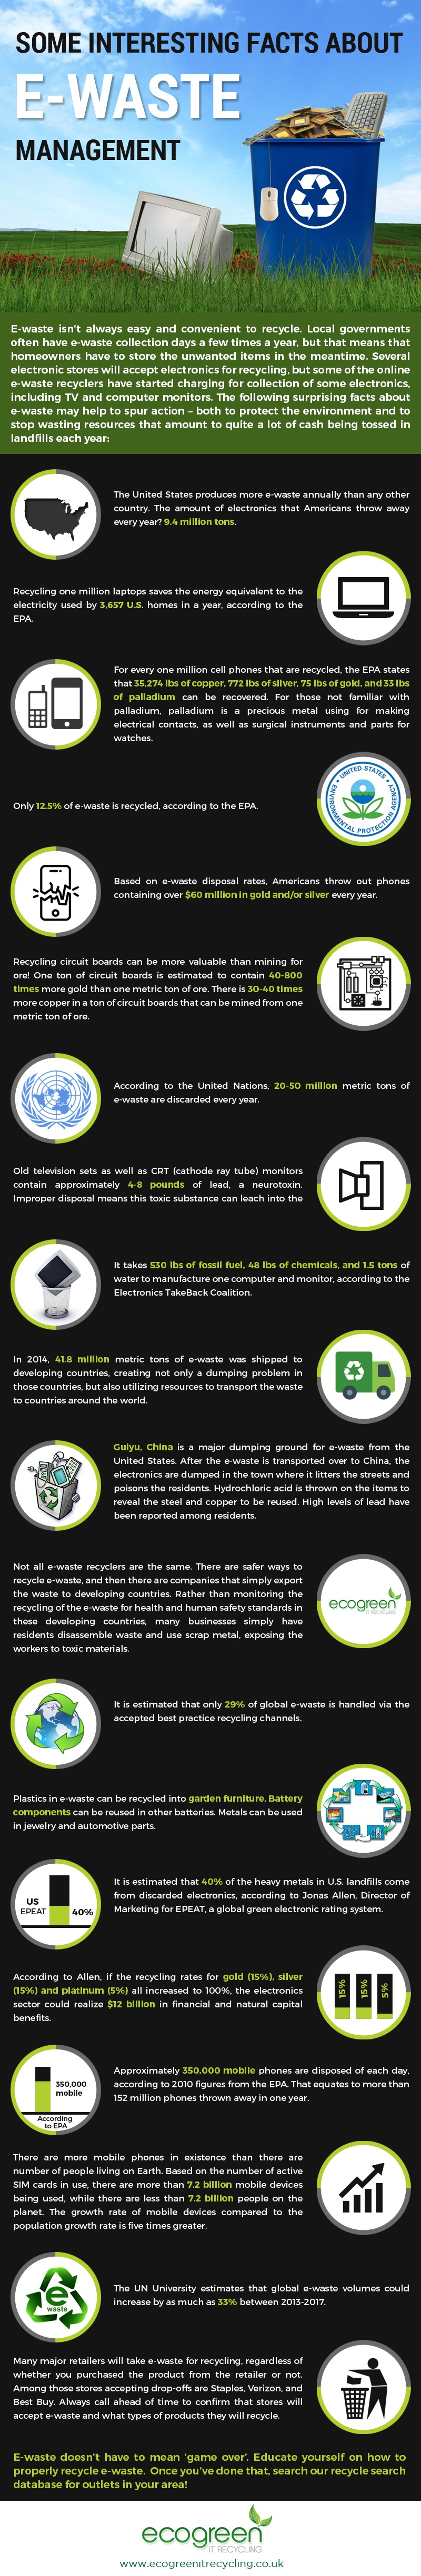 Interesting Facts About E-Waste Management [Infographic]